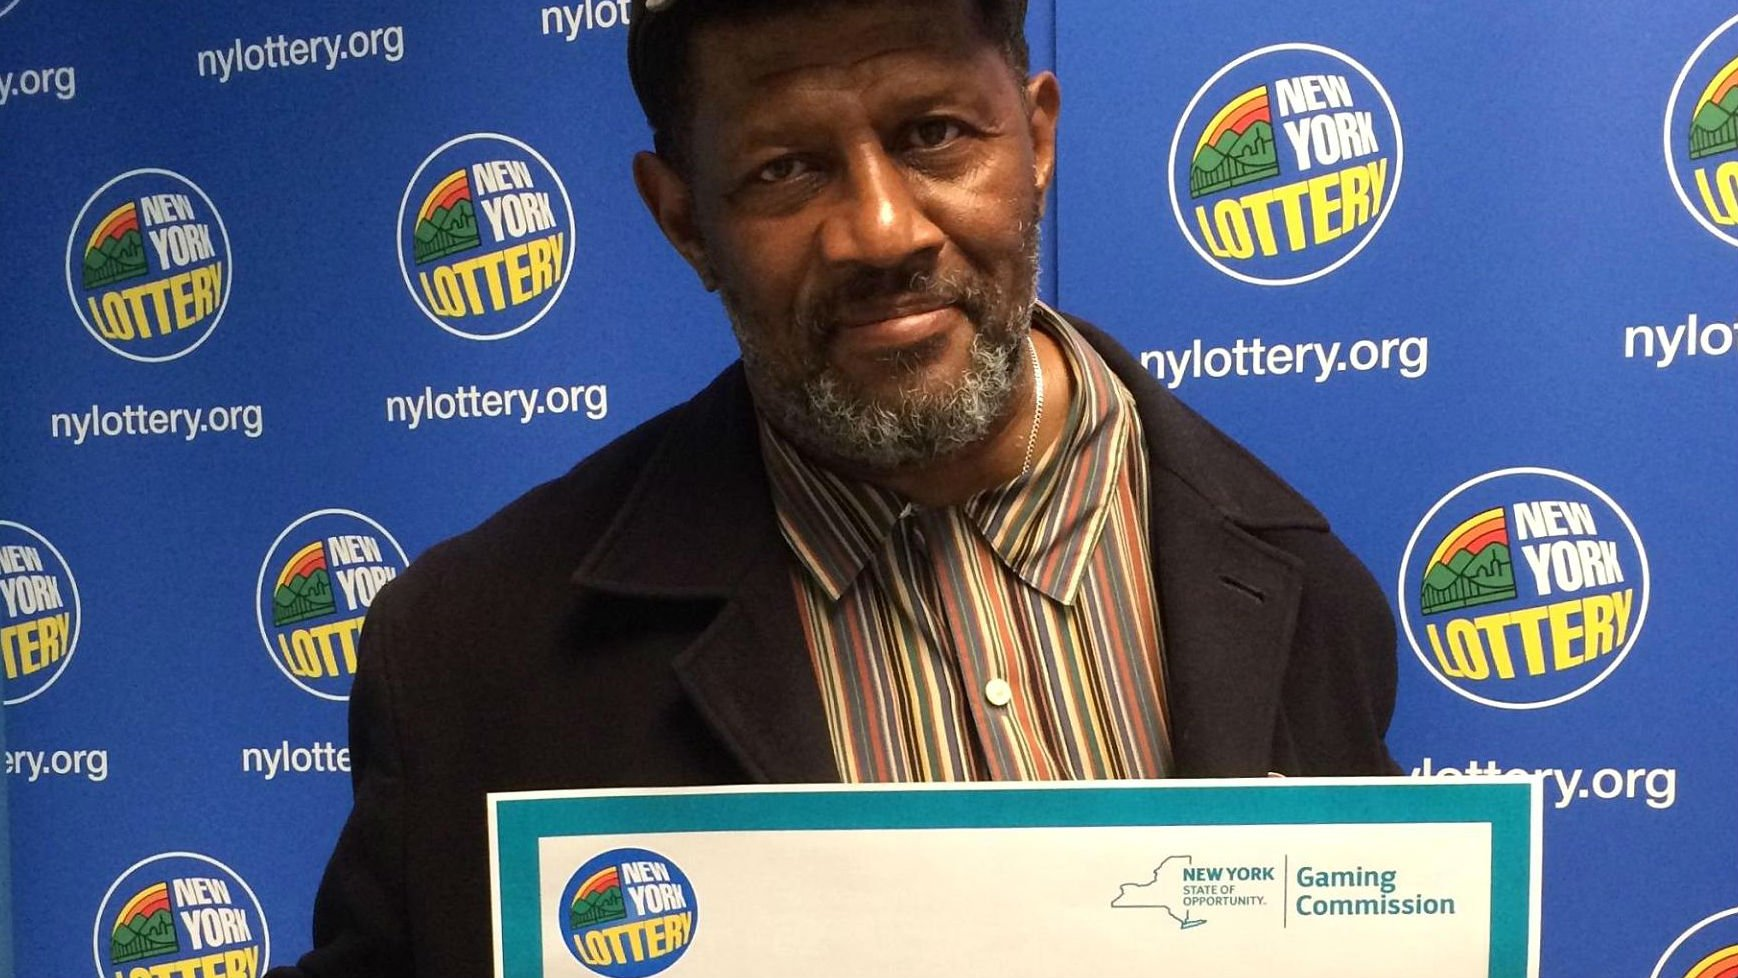 Photo: New York Lottery